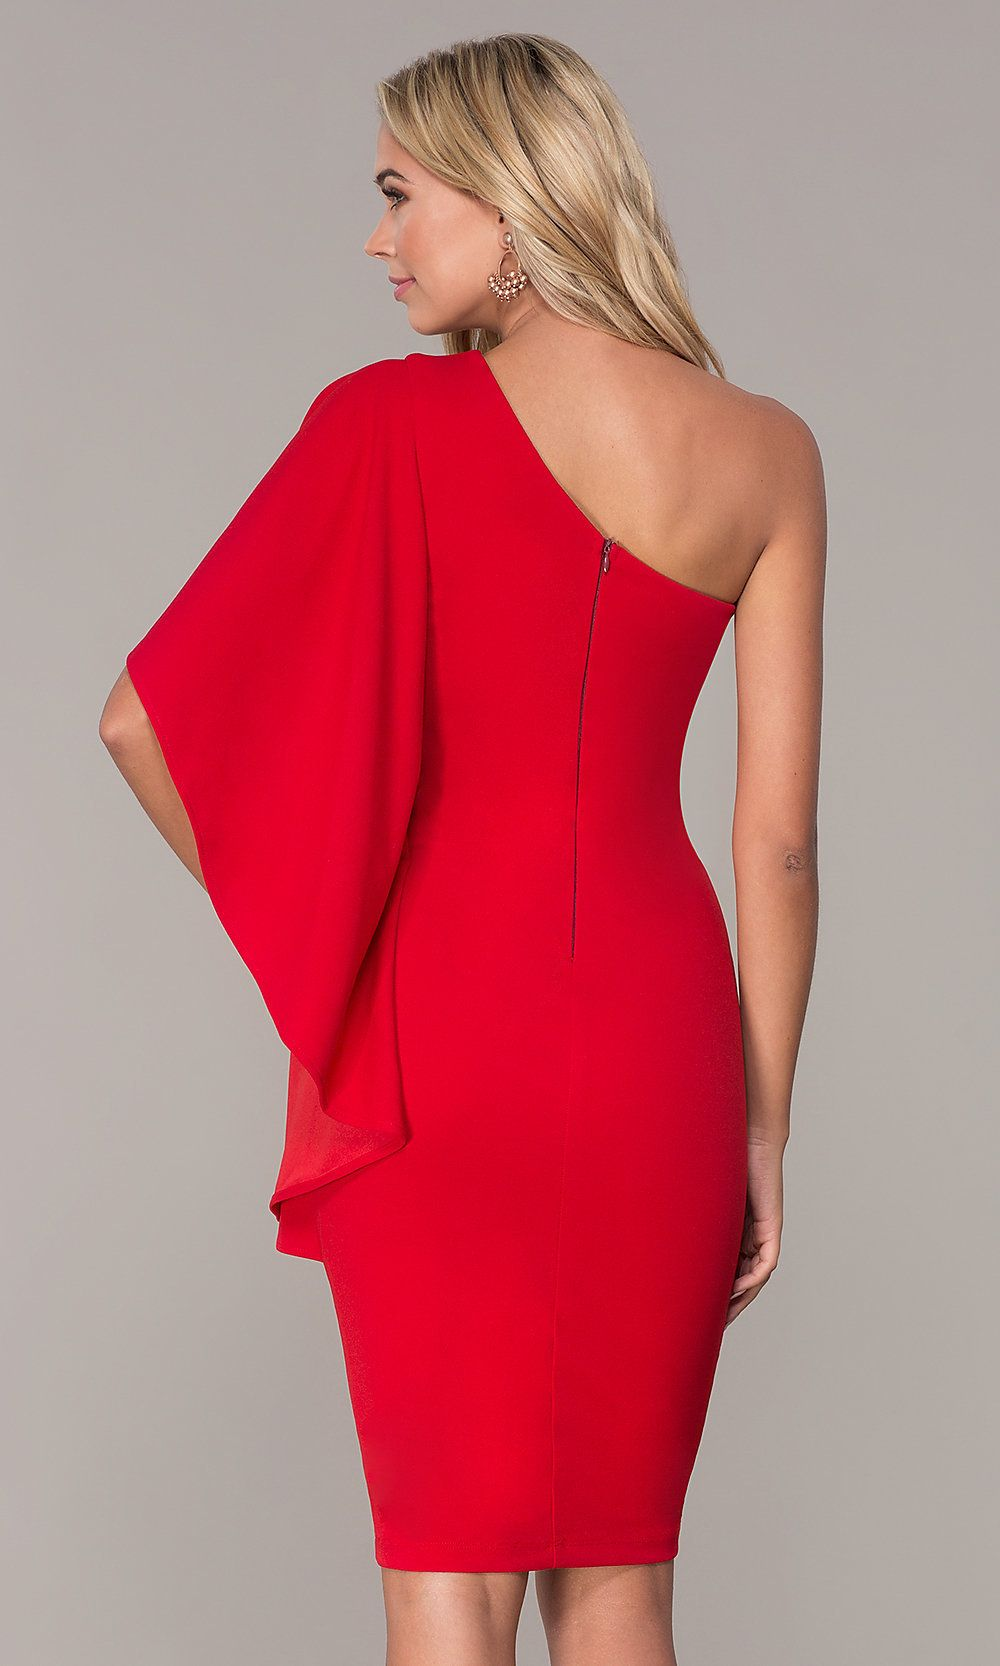 34++ Red one shouldered dress ideas in 2021